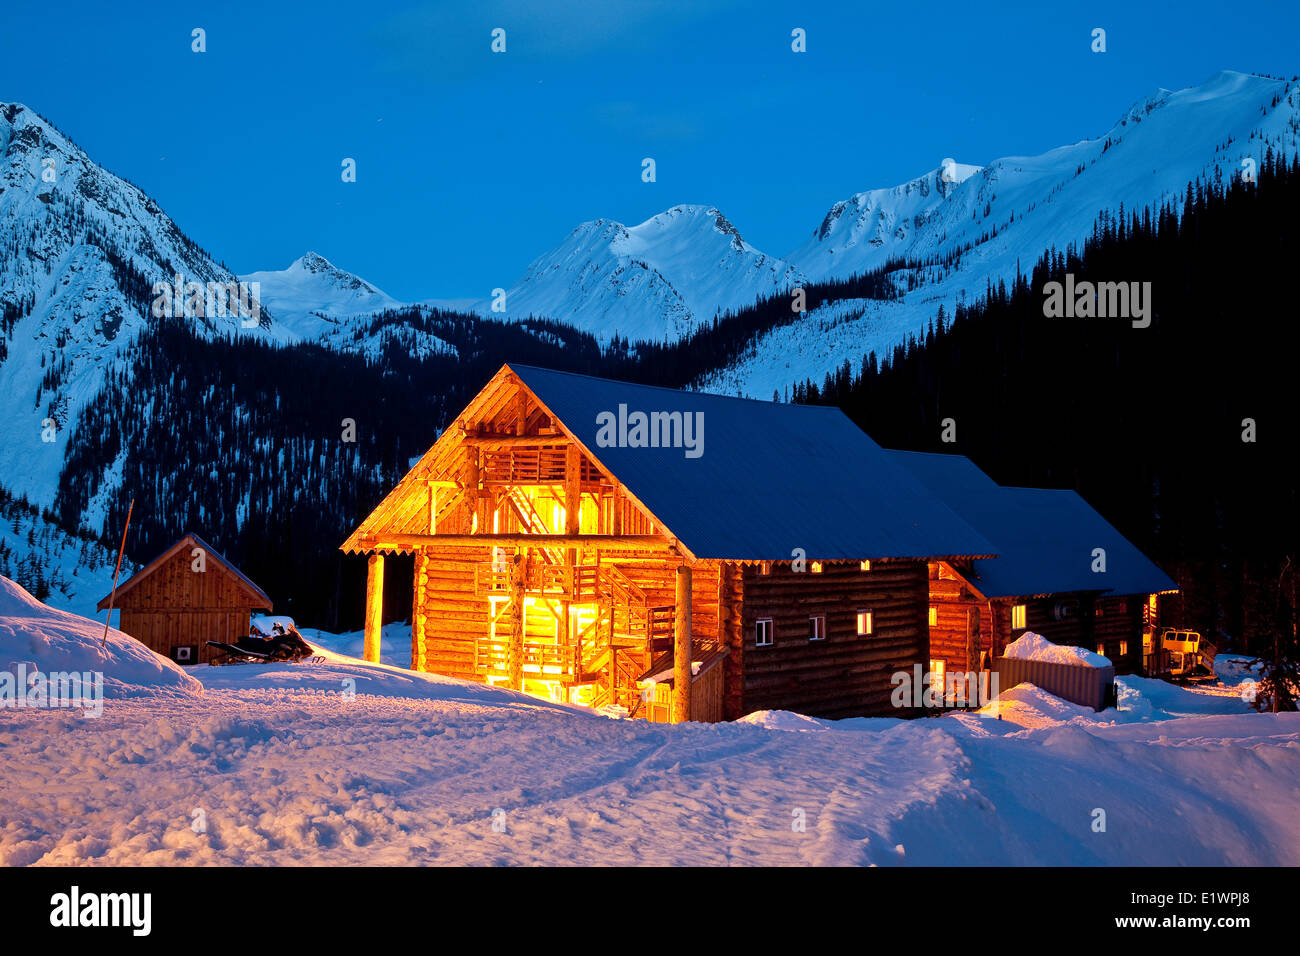 Chatter Creek Lodge in evening, Chatter Creek Catskiing, near Golden, BC, Canada. - Stock Image